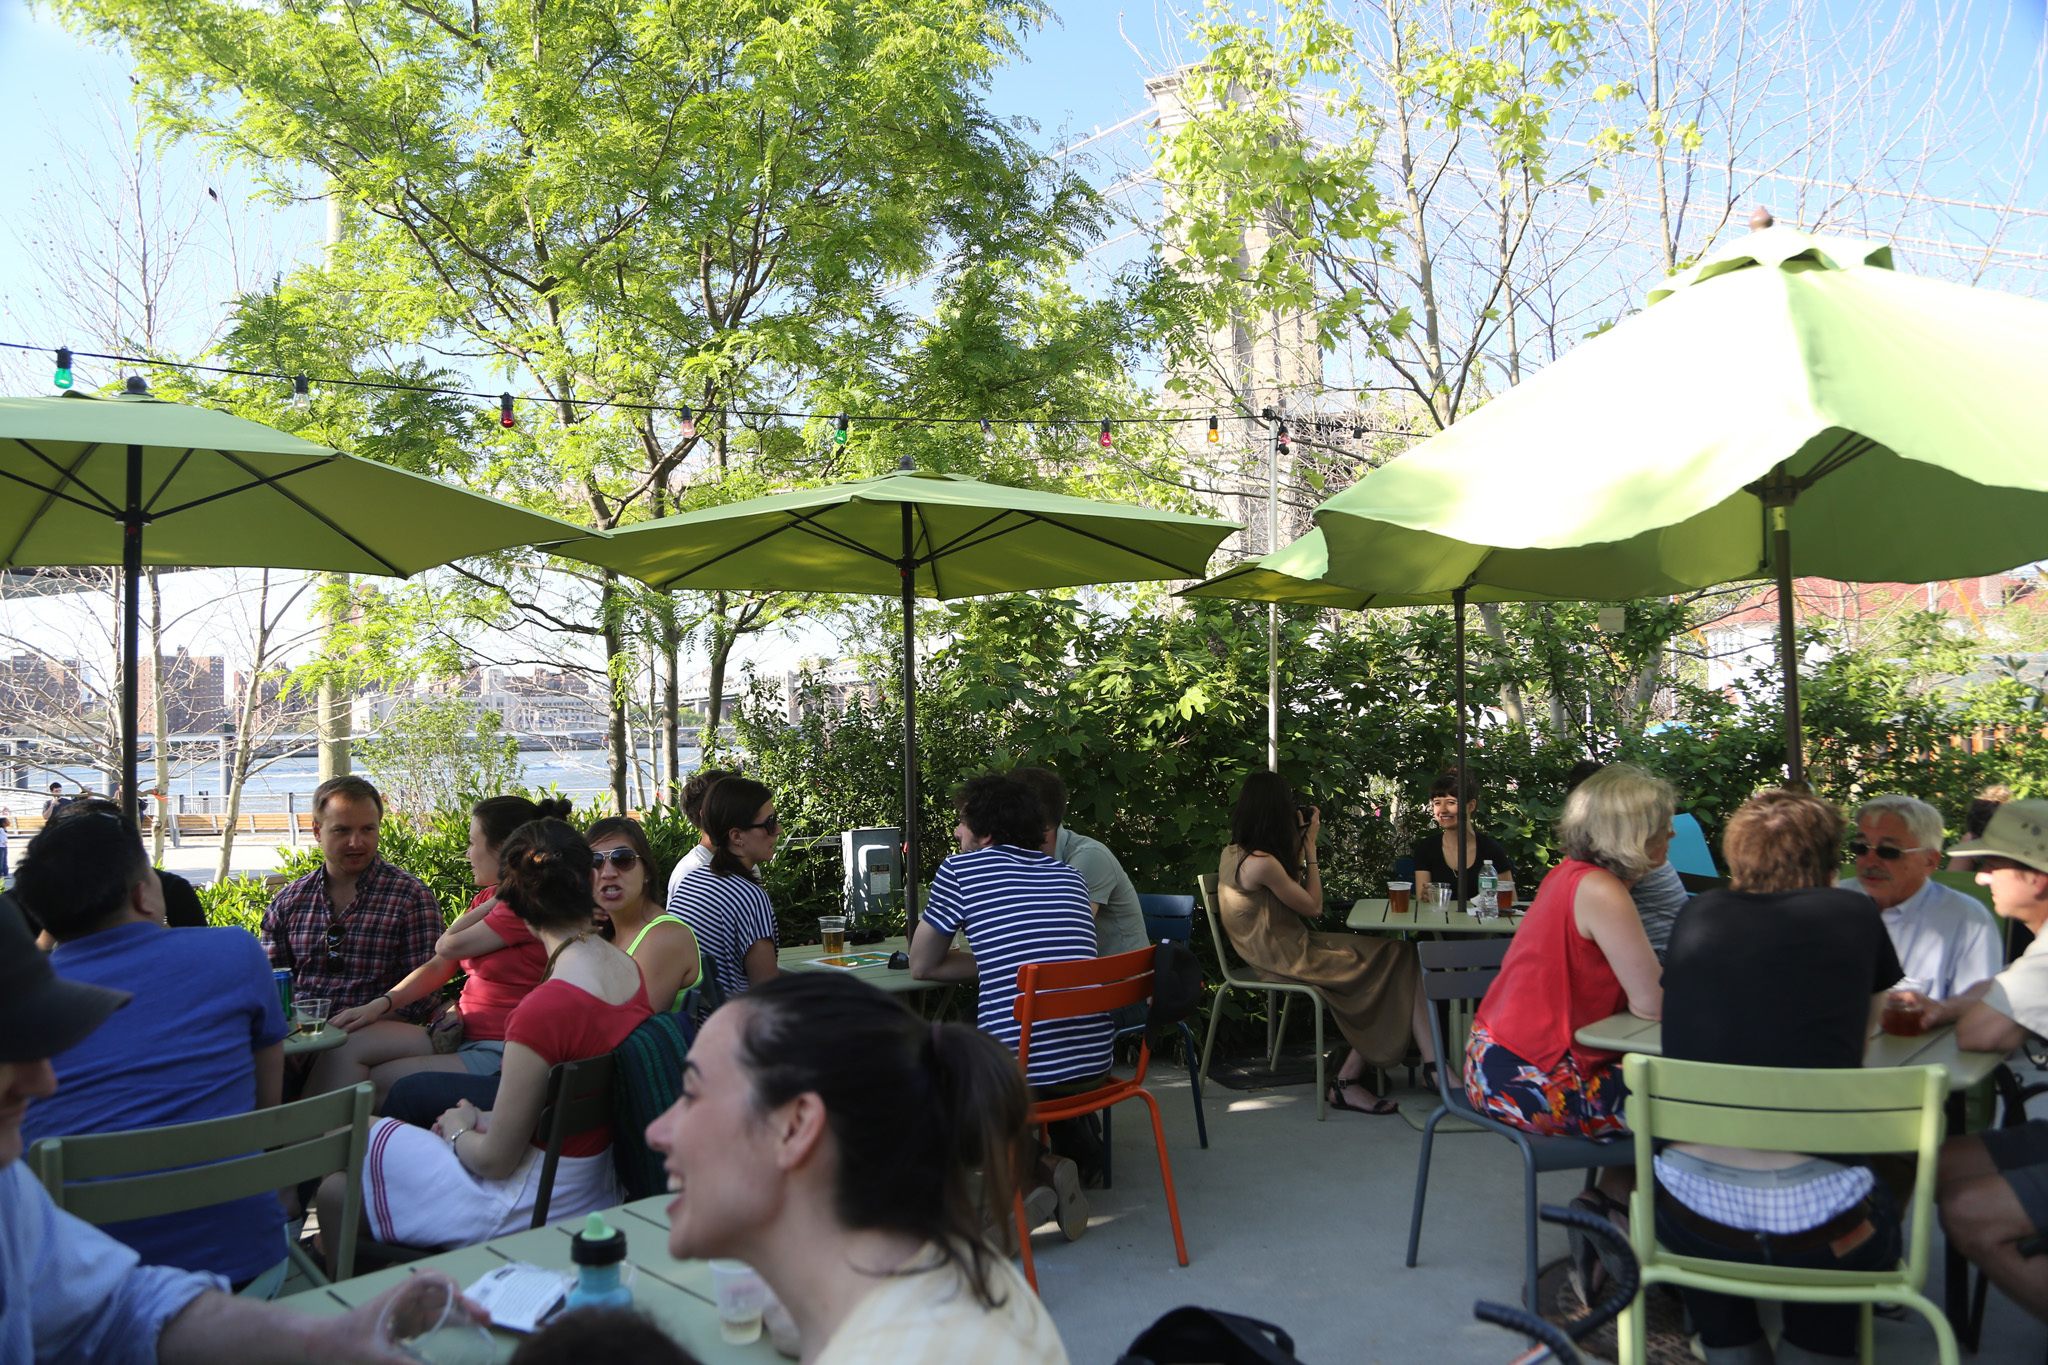 Where to drink in (or near) NYC parks